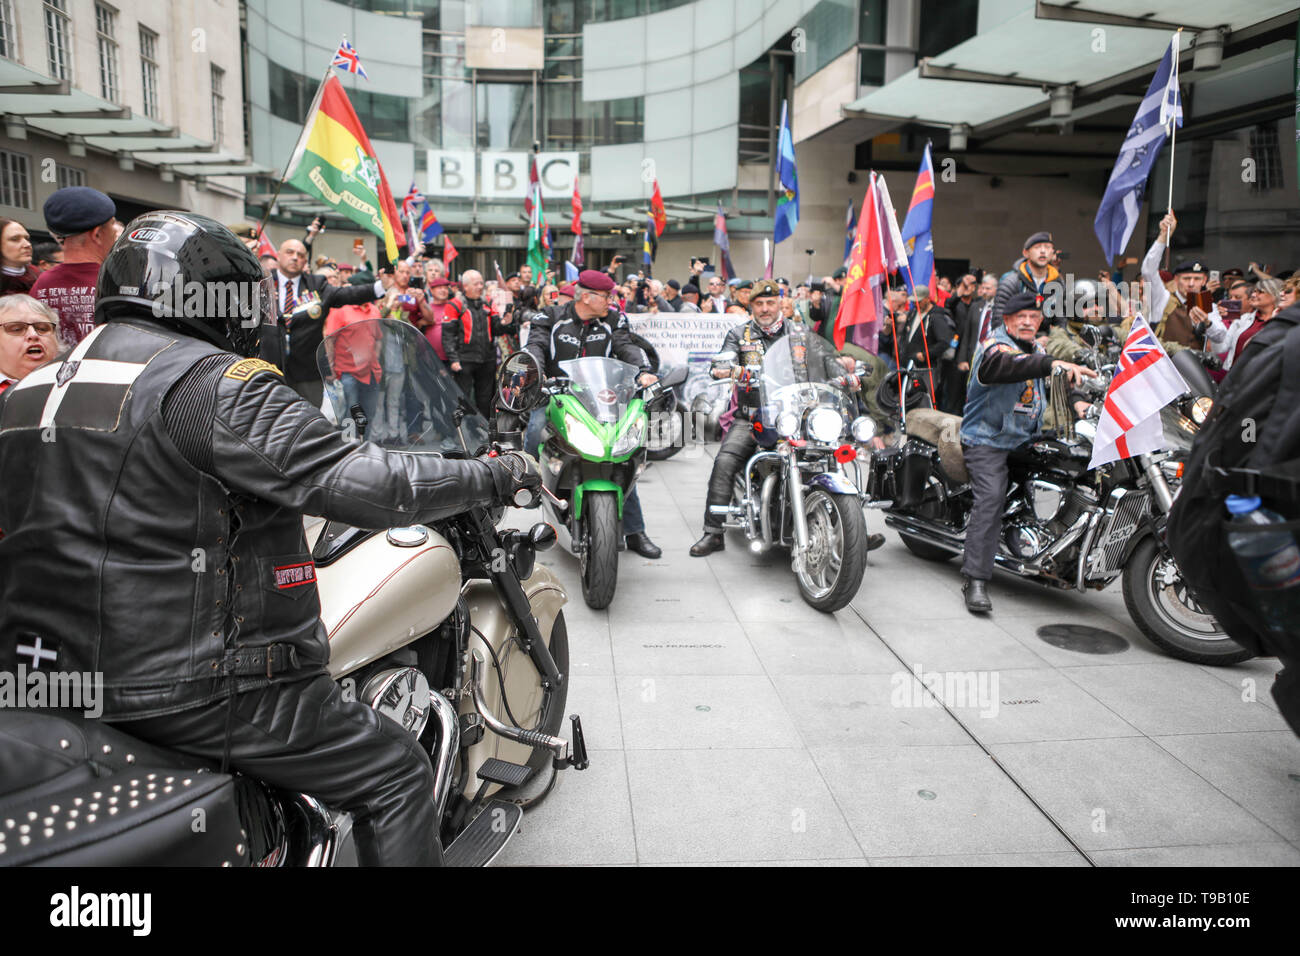 Broadcasting House, London, UK. 18th May, 2019. Hundreds of veterans demonstrate outside the BBC in protest of the prosecution of Soldier F - who faces murder charges over the Bloody Sunday shootings in 1972. Credit: Penelope Barritt/Alamy Live News - Stock Image